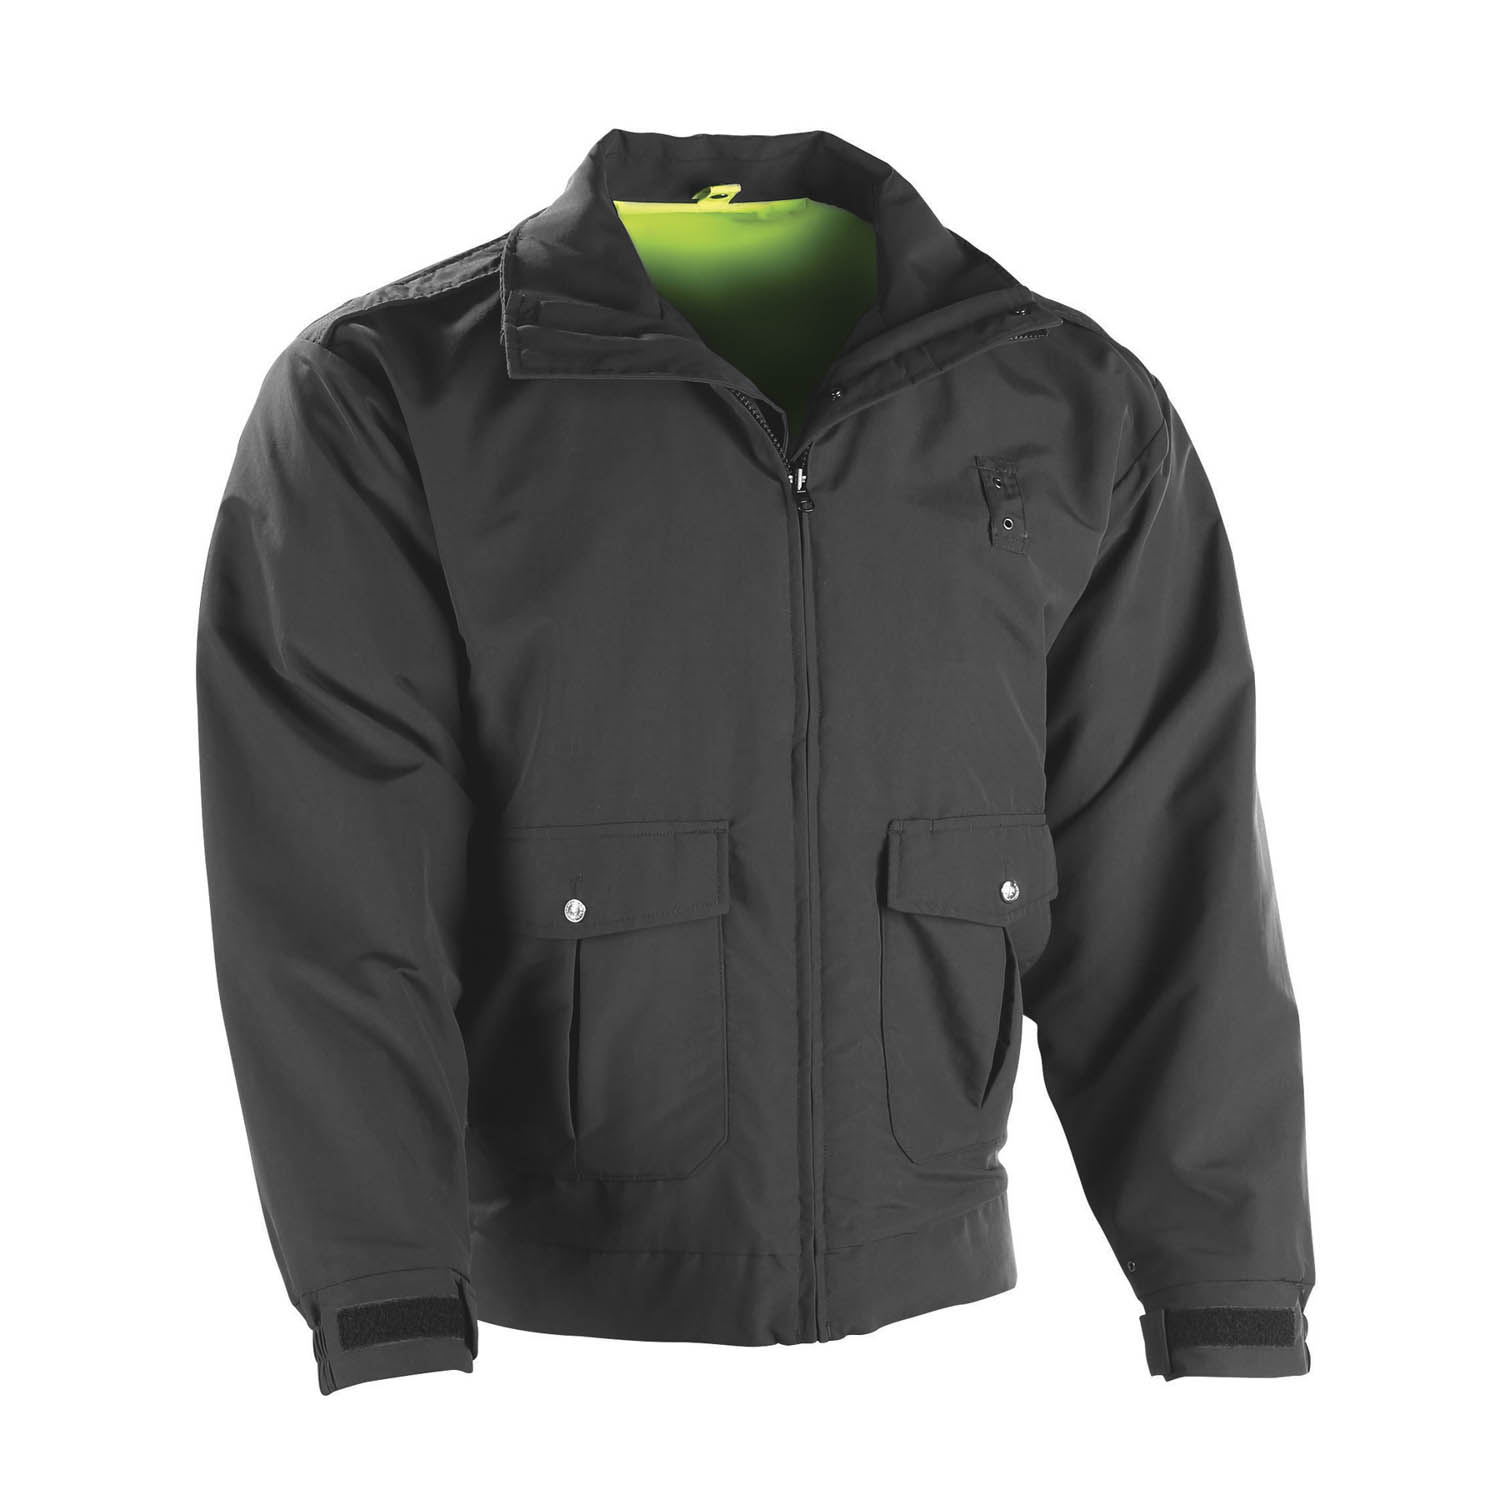 Flying Cross LayerTech ANSI II Certified Reversible Jacket